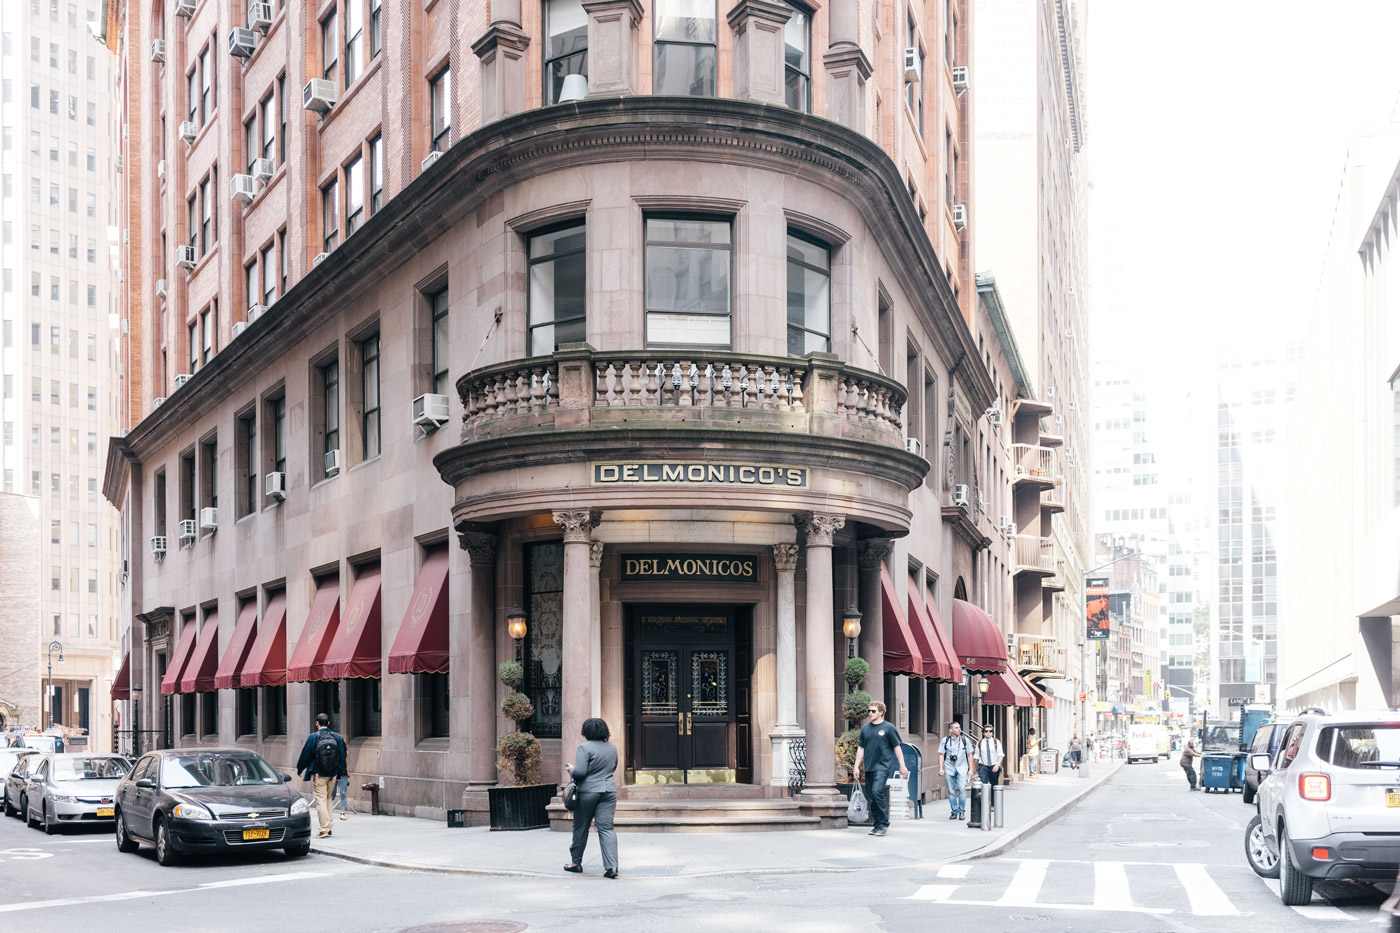 The famous Delmonico's in the Financial District